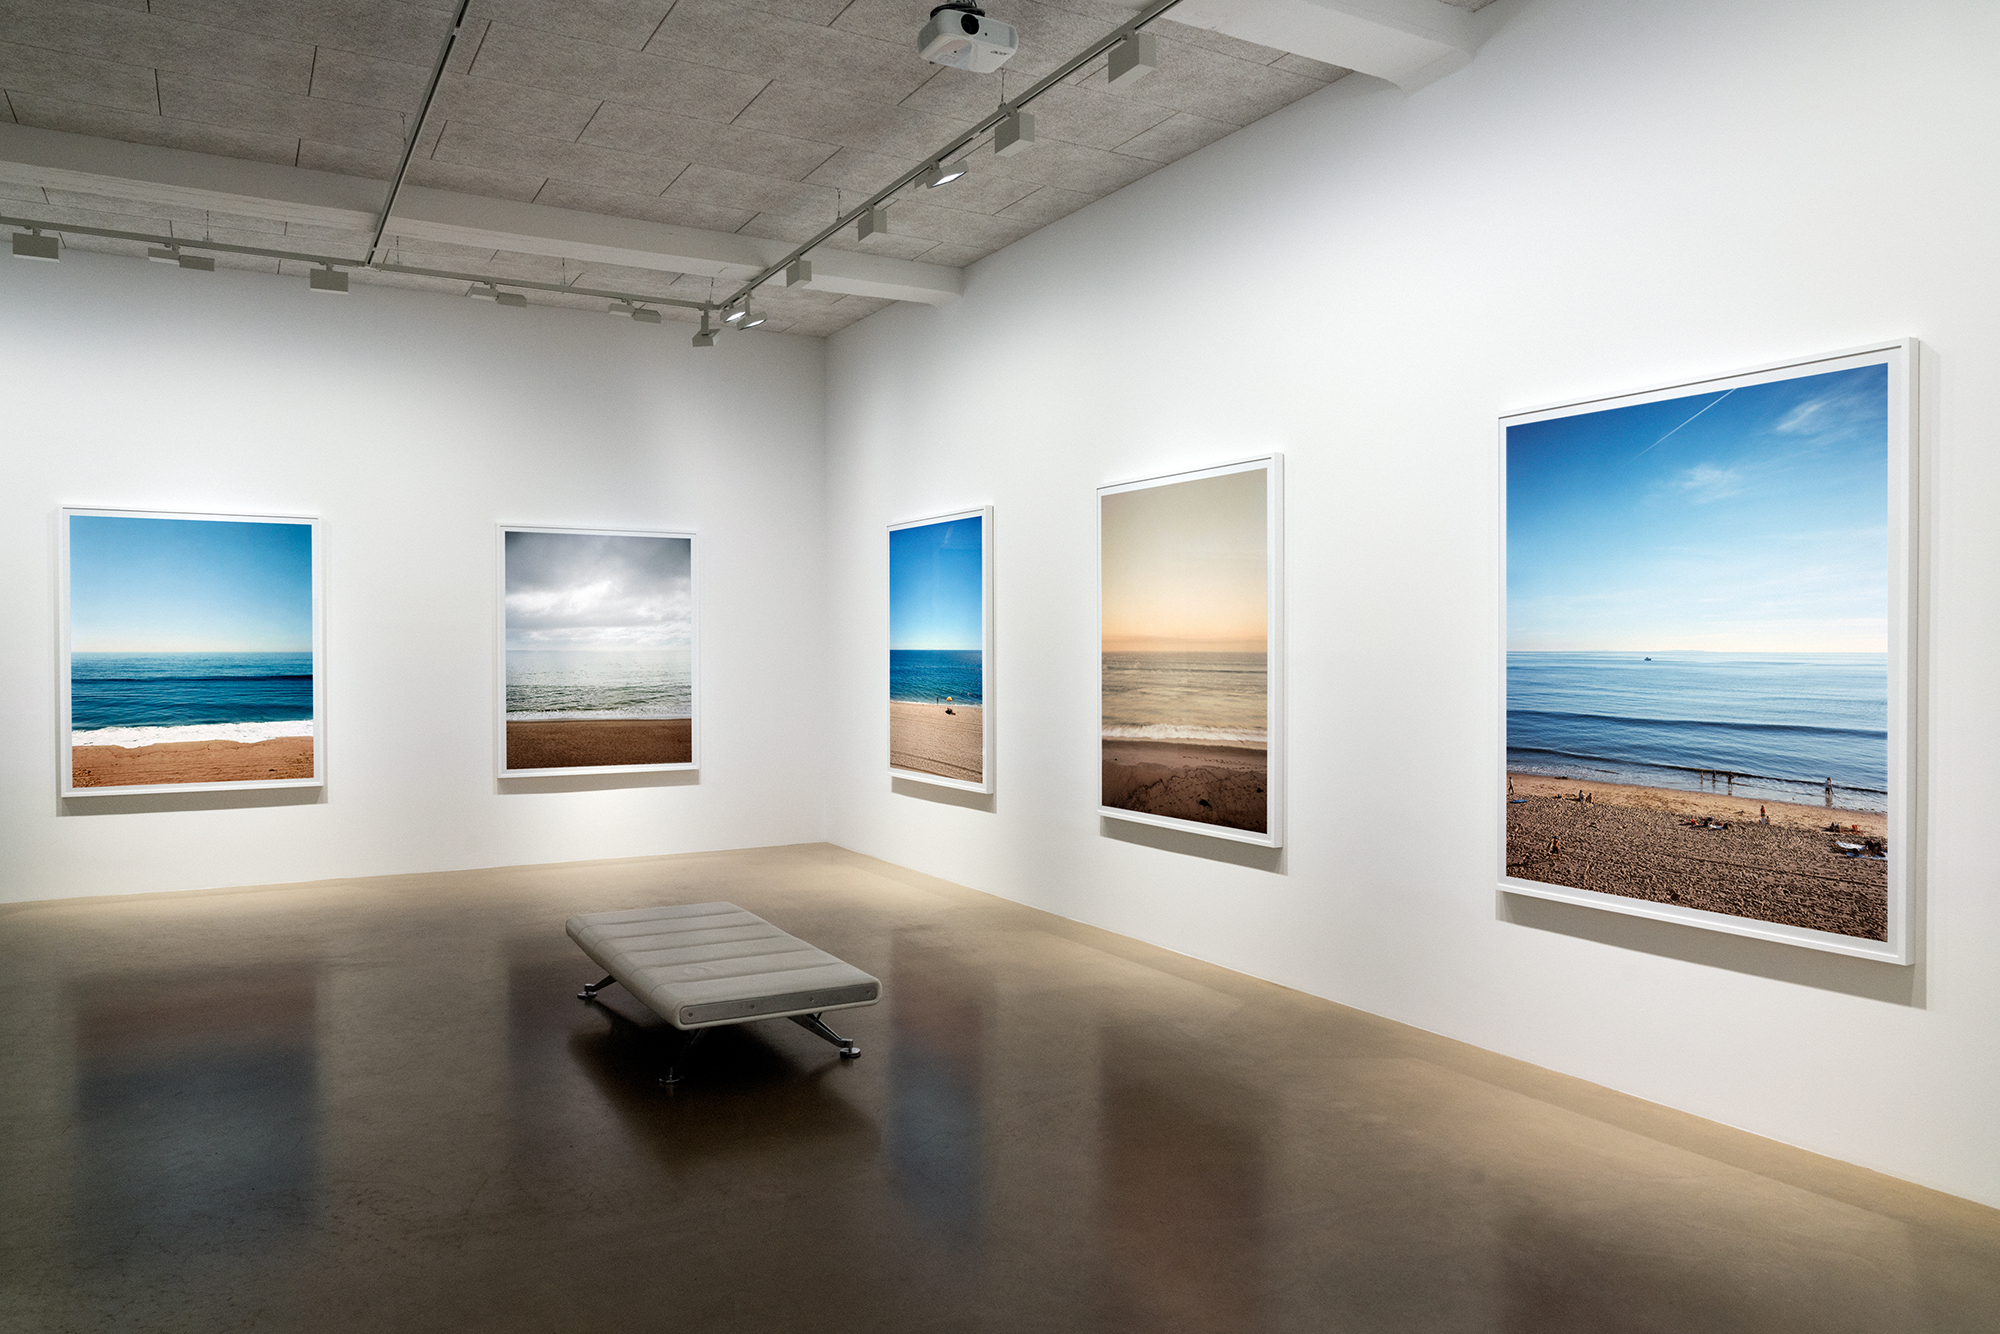 RH_TOPANGA_BEACH_GALLERY_POUSLEN_2019_10_FINAL